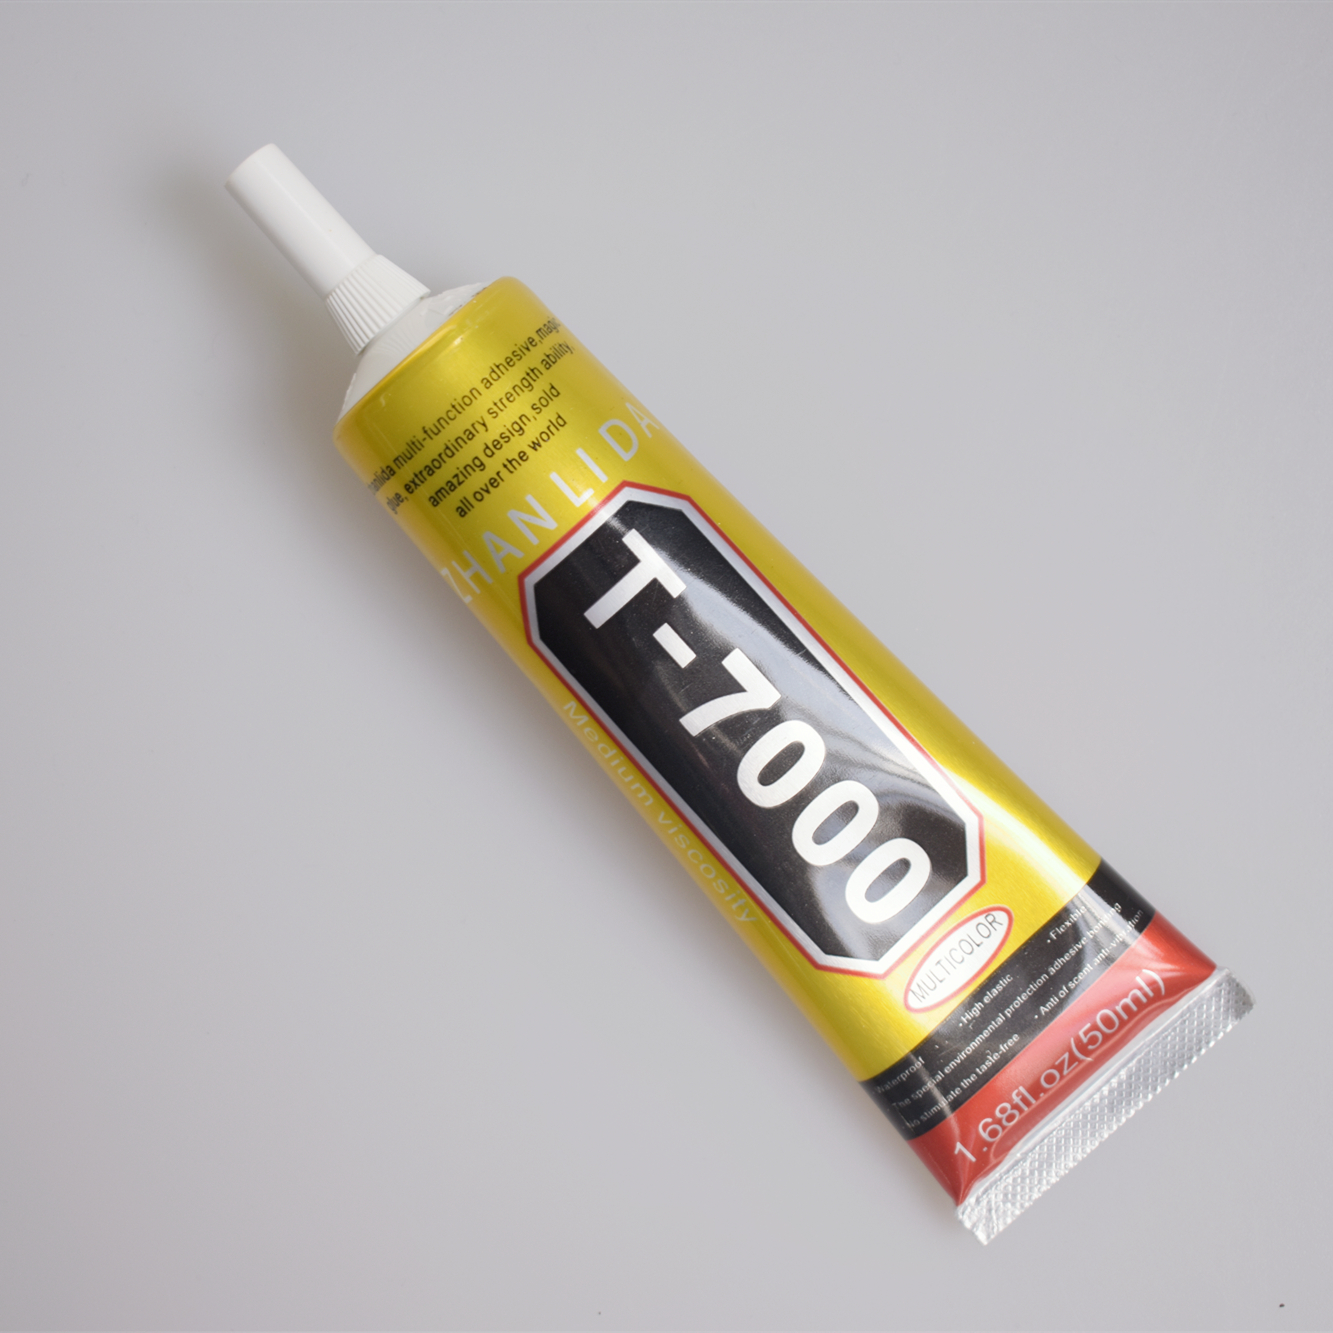 1 Pcs 50ml T-7000 Glue  T7000 Multi Purpose Glue Adhesive Epoxy Resin Repair Cell Phone LCD Touch Screen Super Glue T 7000